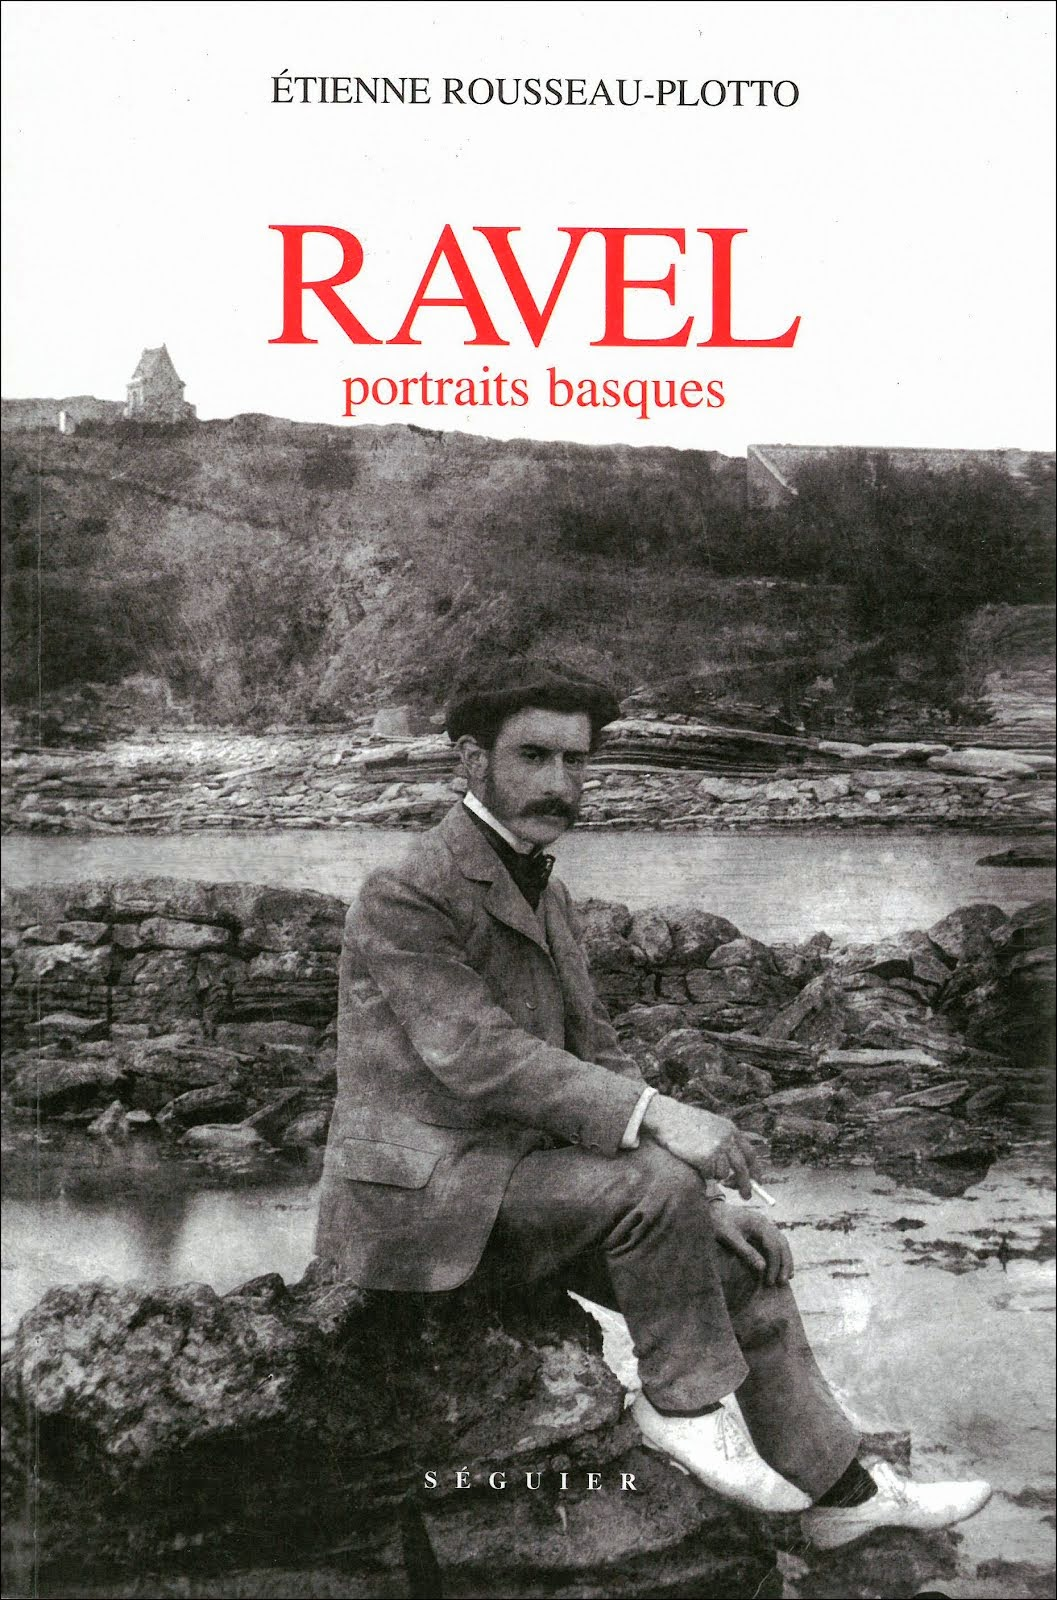 Etienne Rousseau-Plotto : « Ravel. Portraits basques » 2004 (épuisé)